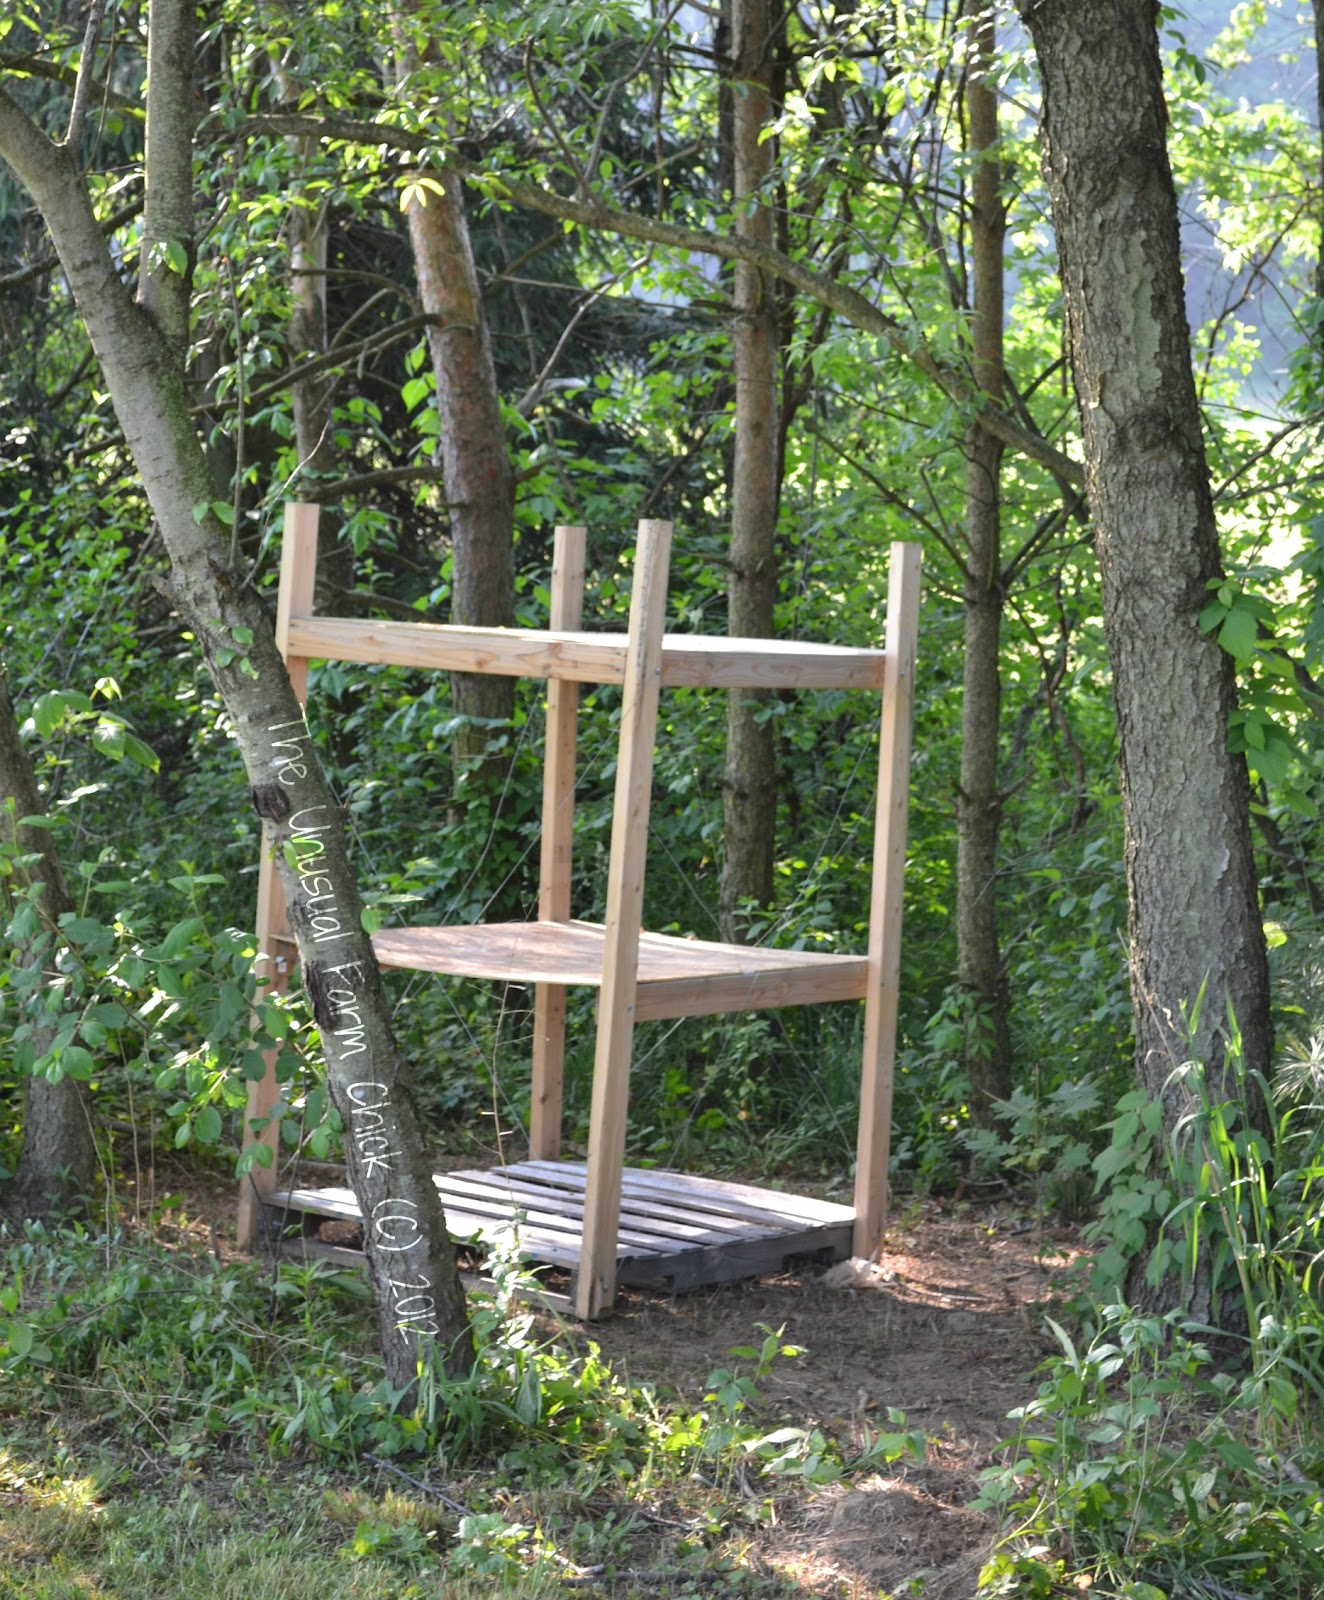 Queen of the pallets strikes again pallet furniture for Pallet tree fort